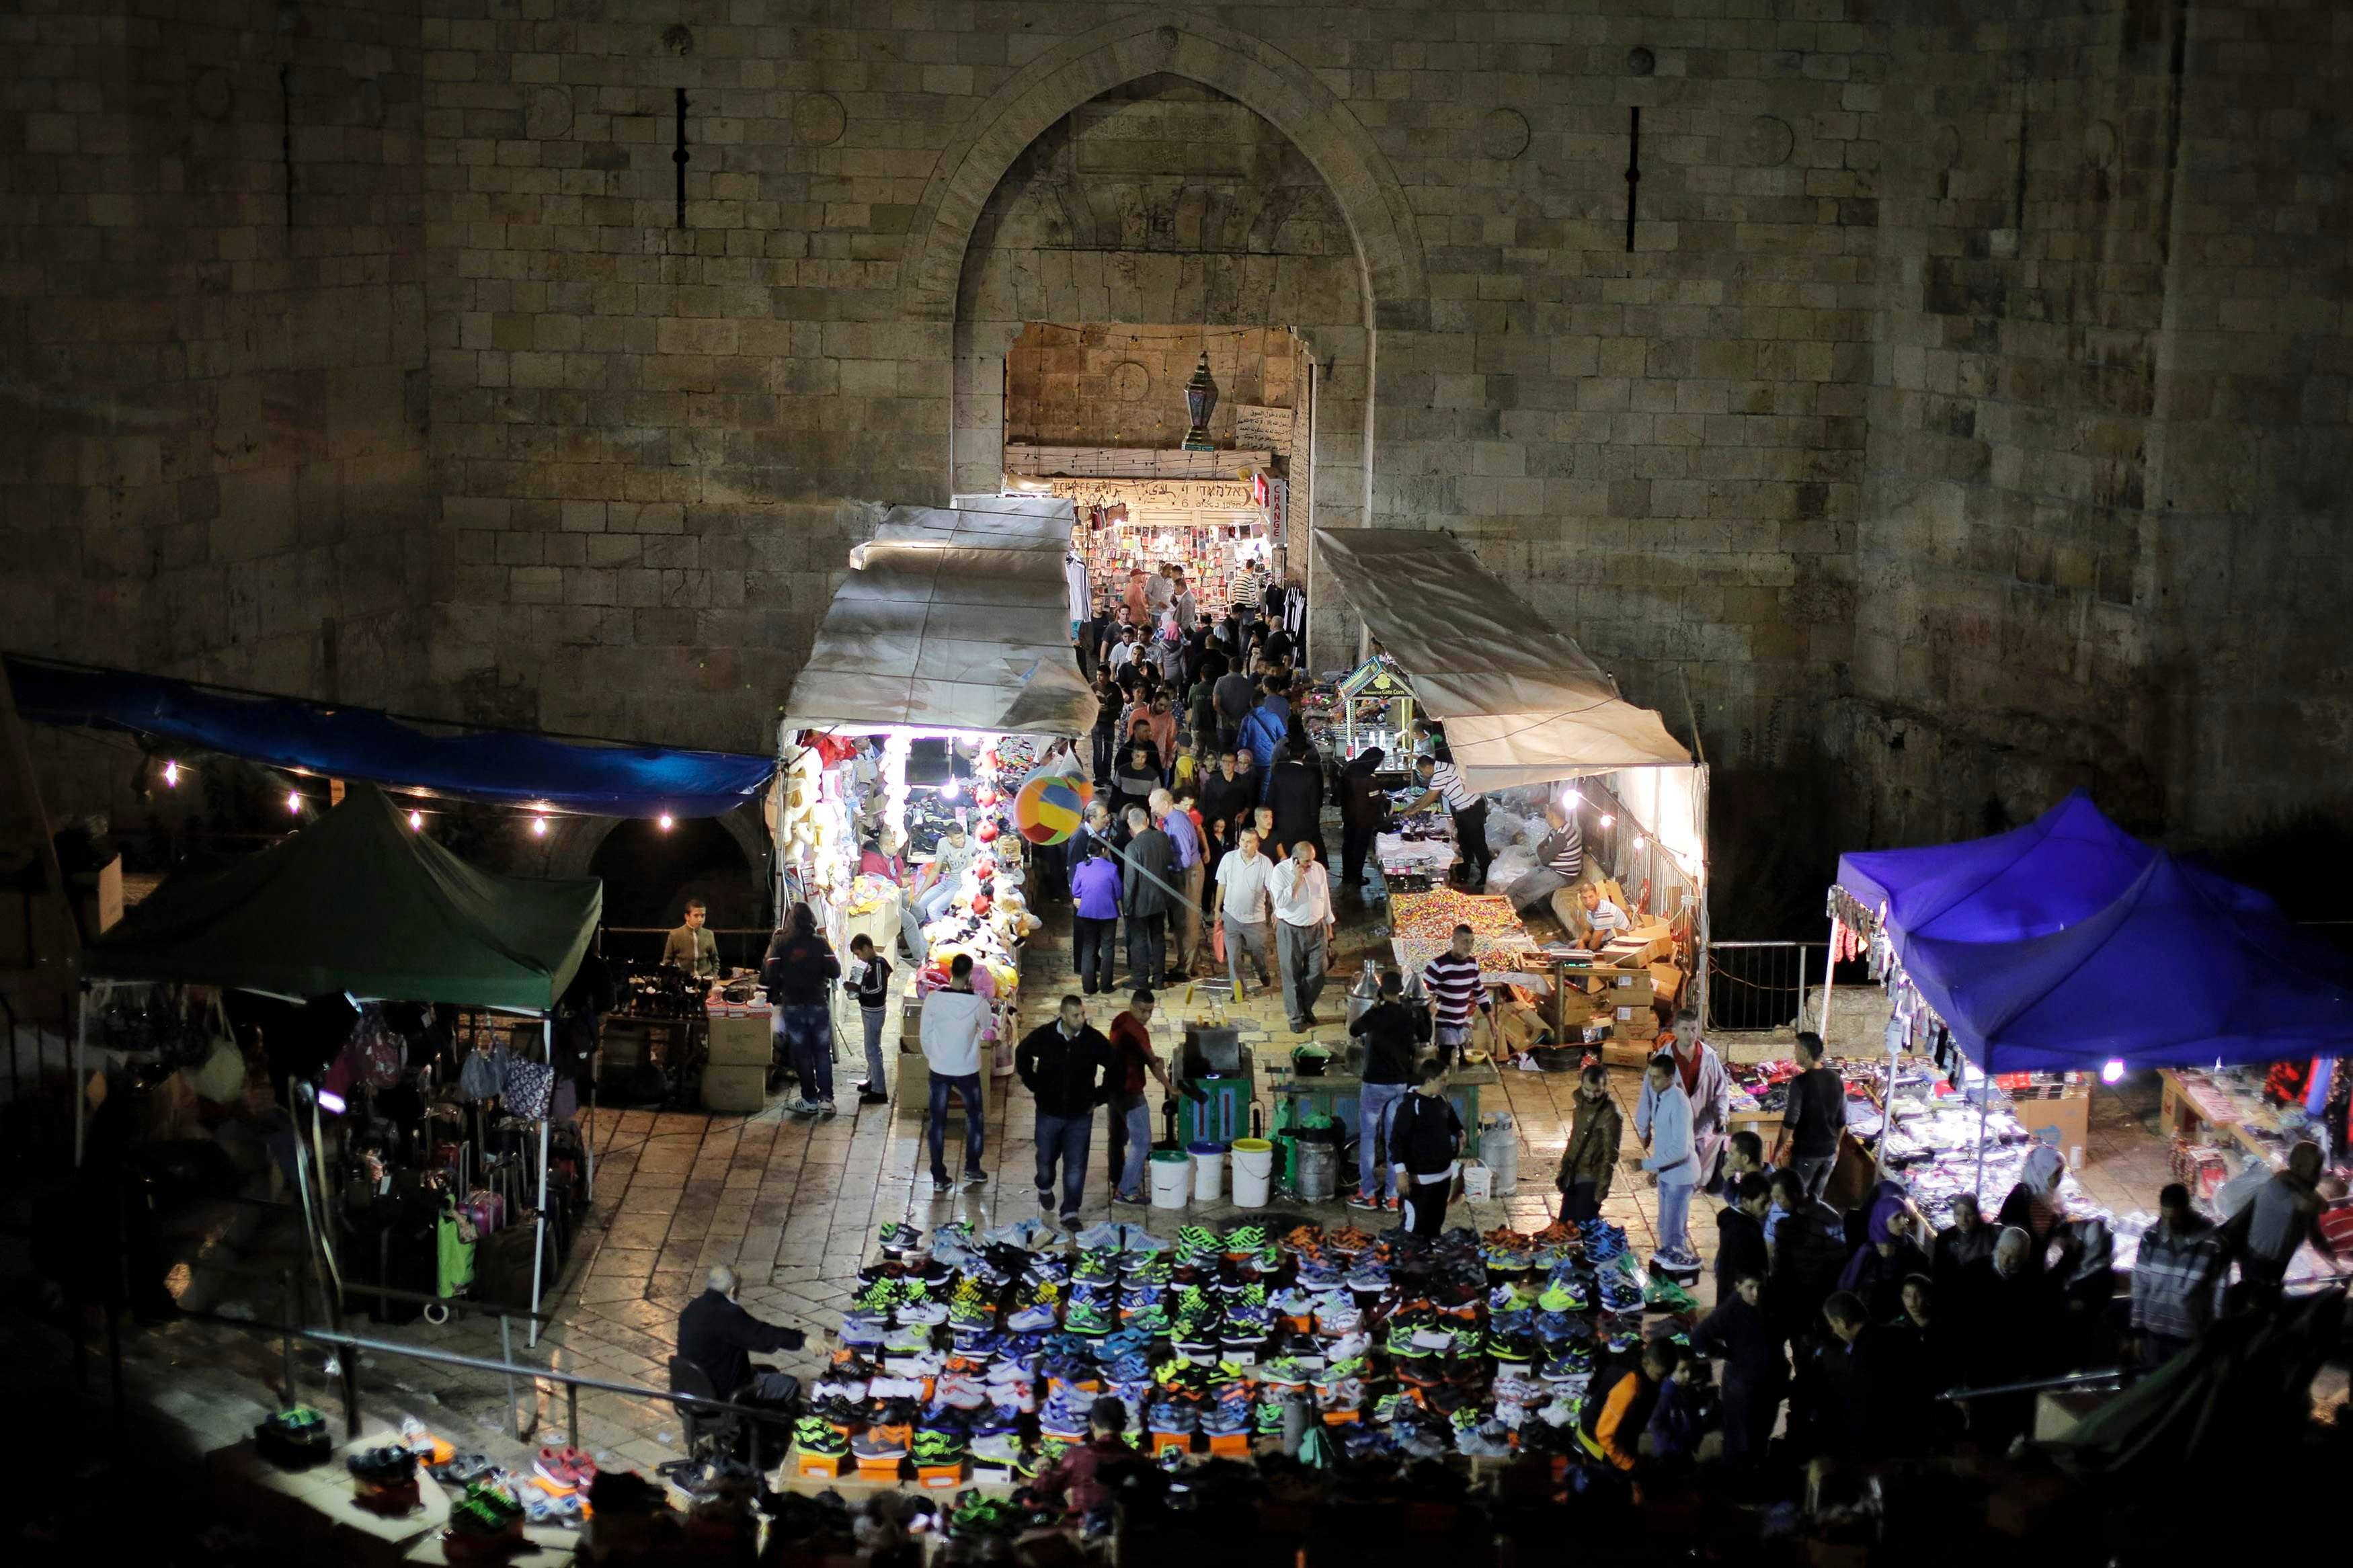 PALESTINE: Palestinians shop at a market ahead of Eid al-Adha at Damascus Gate in Jerusalem's Old City October 14, 2013. (Reuters)